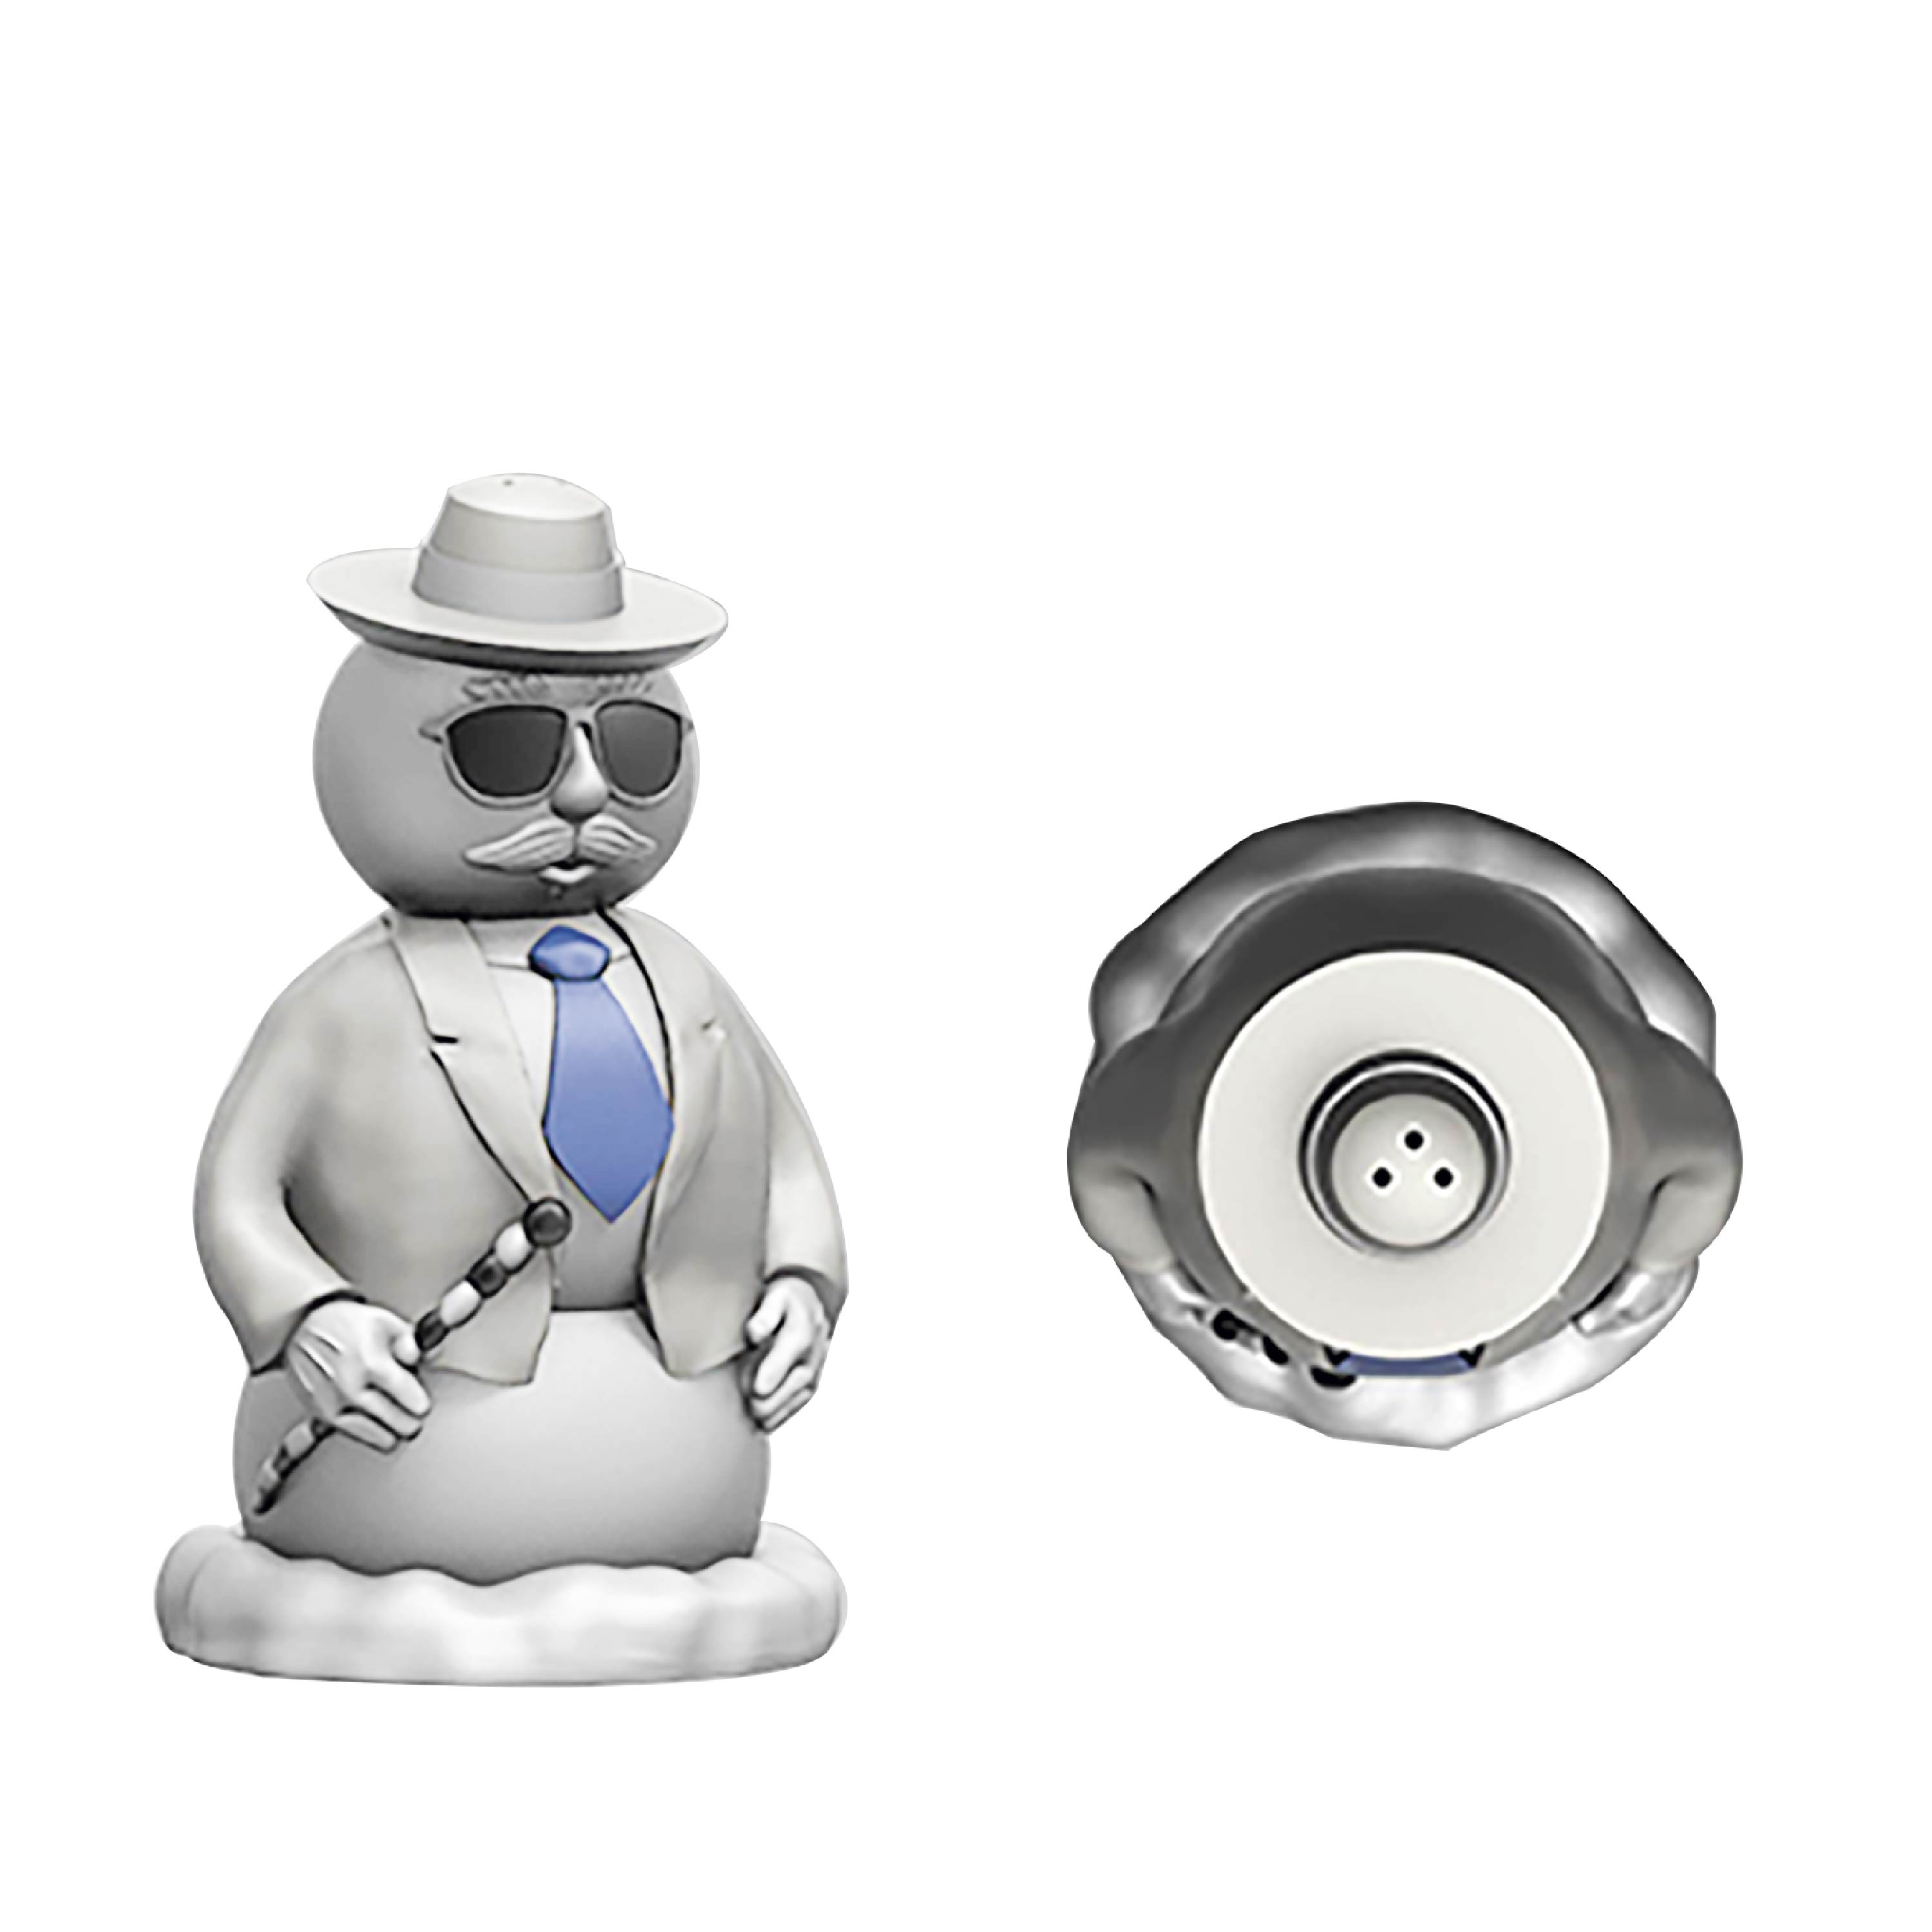 Christmas Collectibles Salt and Pepper Shaker Set, Elf & Snowman, 2-piece set slideshow image 3